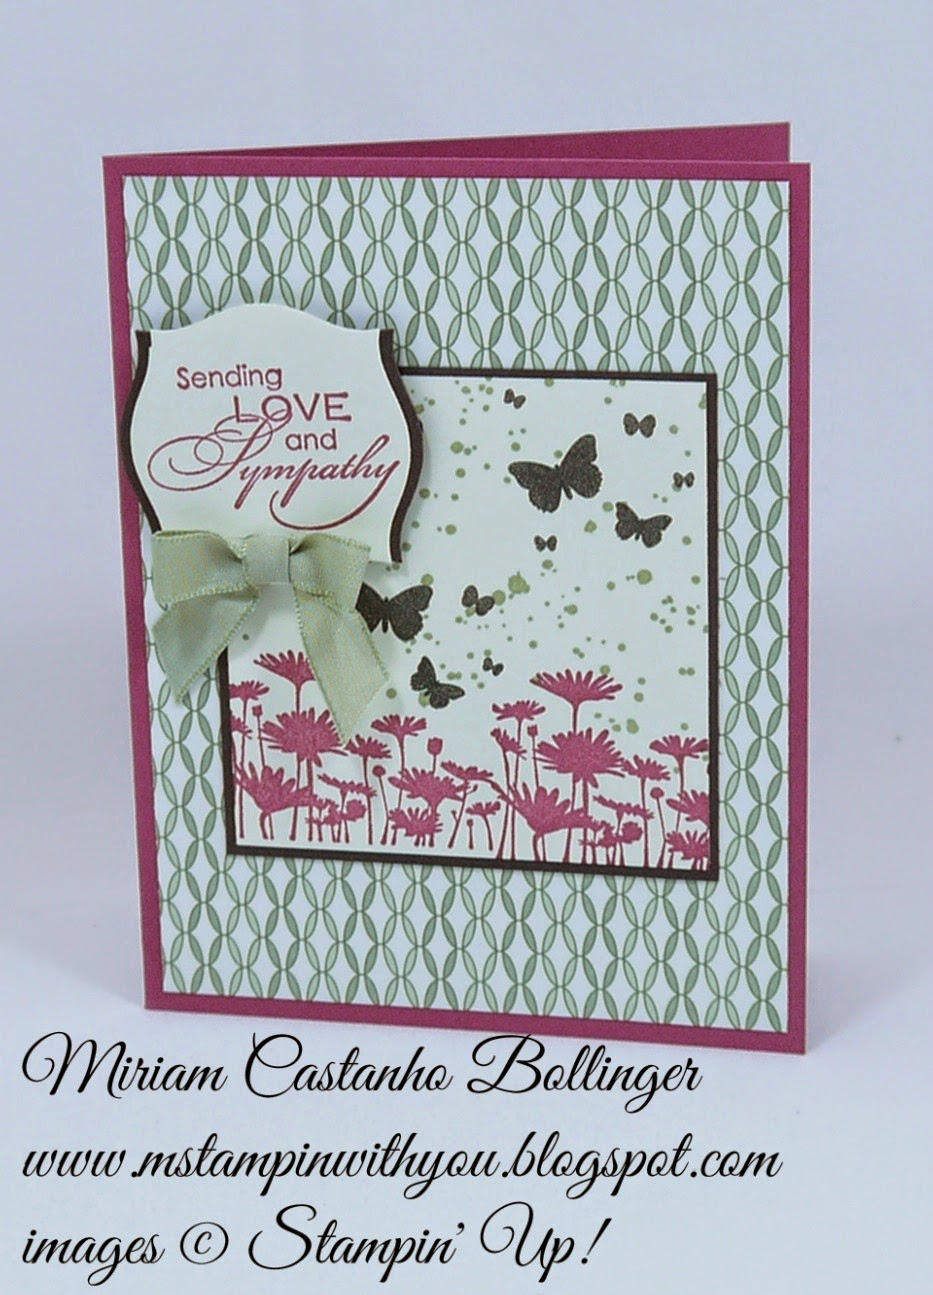 Miriam Castanho Bollinger, #mstampinwithyou, stampin up, demonstrator, rs 150,  pocket full of posies dsp, love & sympathy, perpetual birthday calendar, big shot, apothecary accents framelit, best of flowers, su